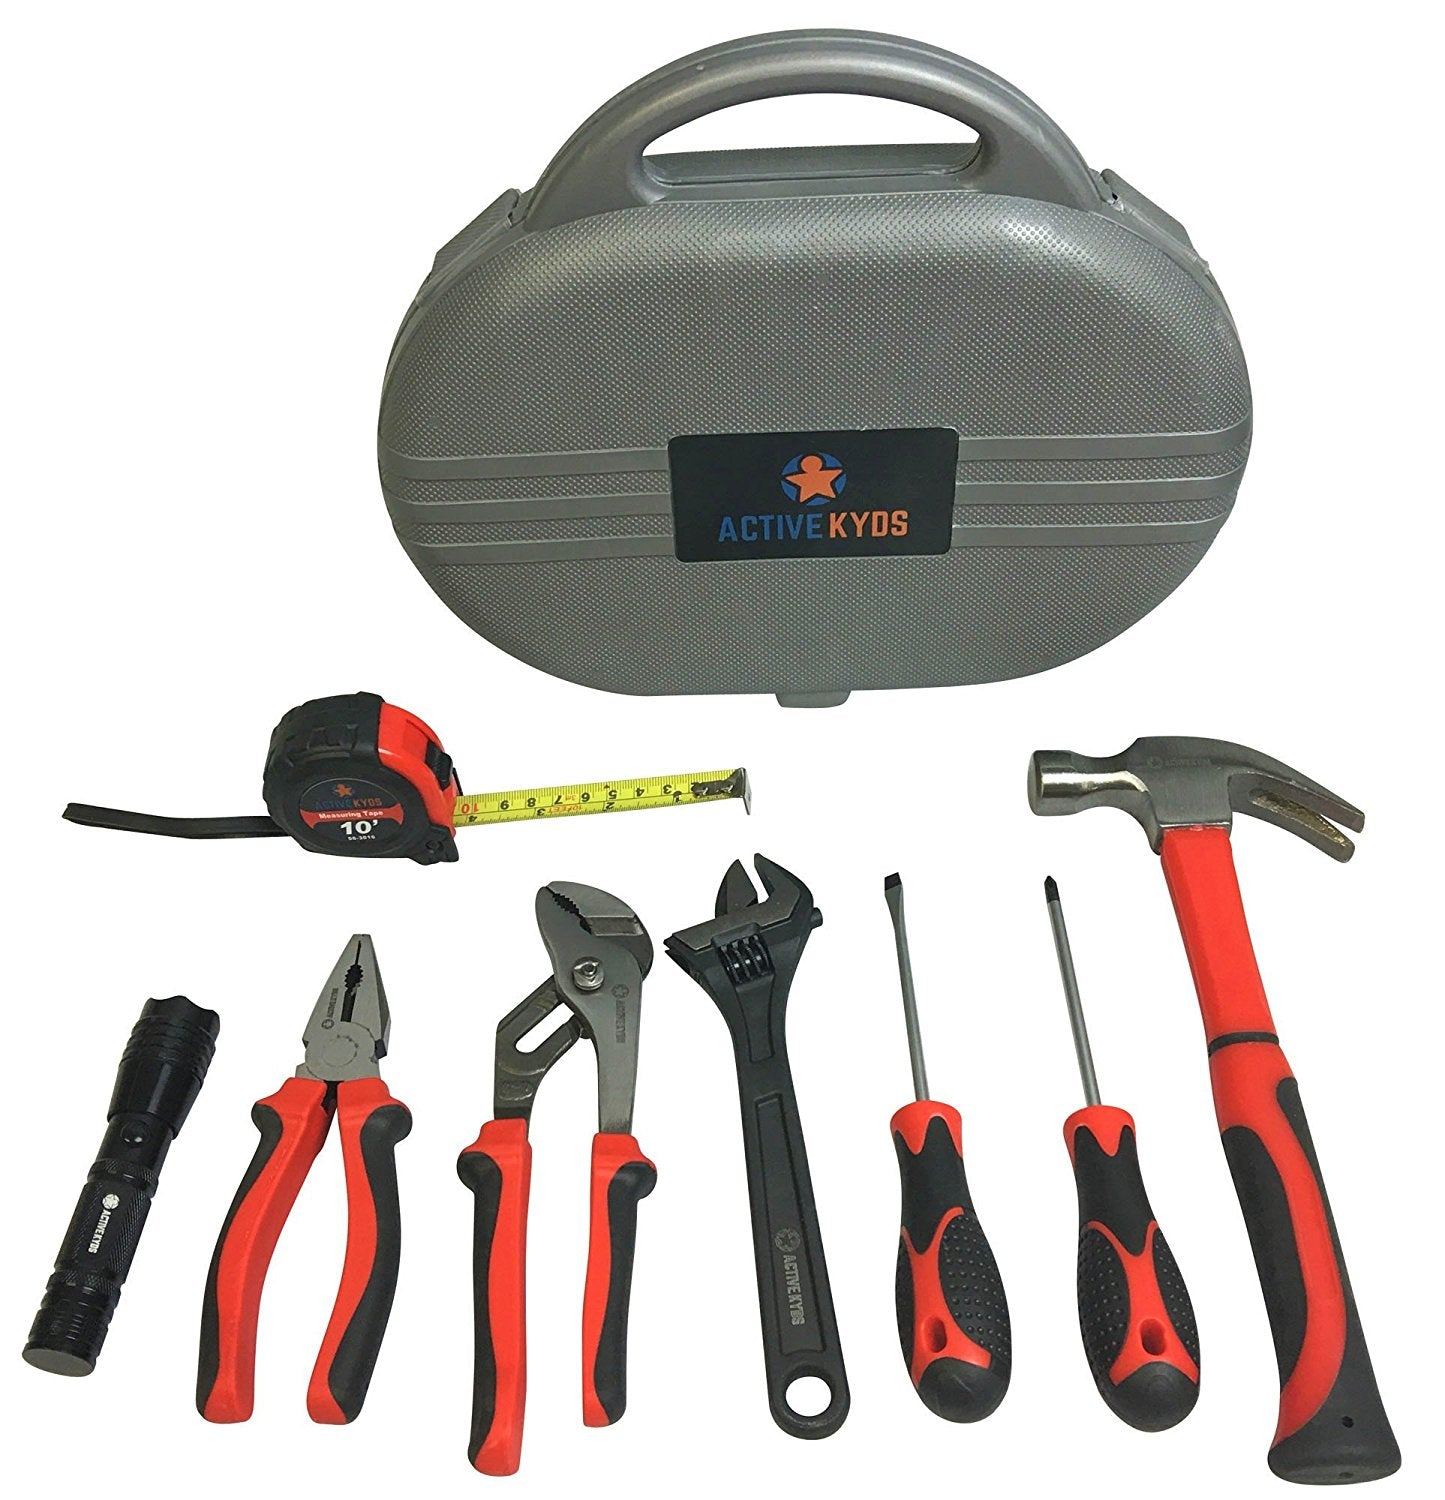 Active Kyds 9 Piece Kids Tool Set with Real Tools: Fiberglass Hammer, Tape LED